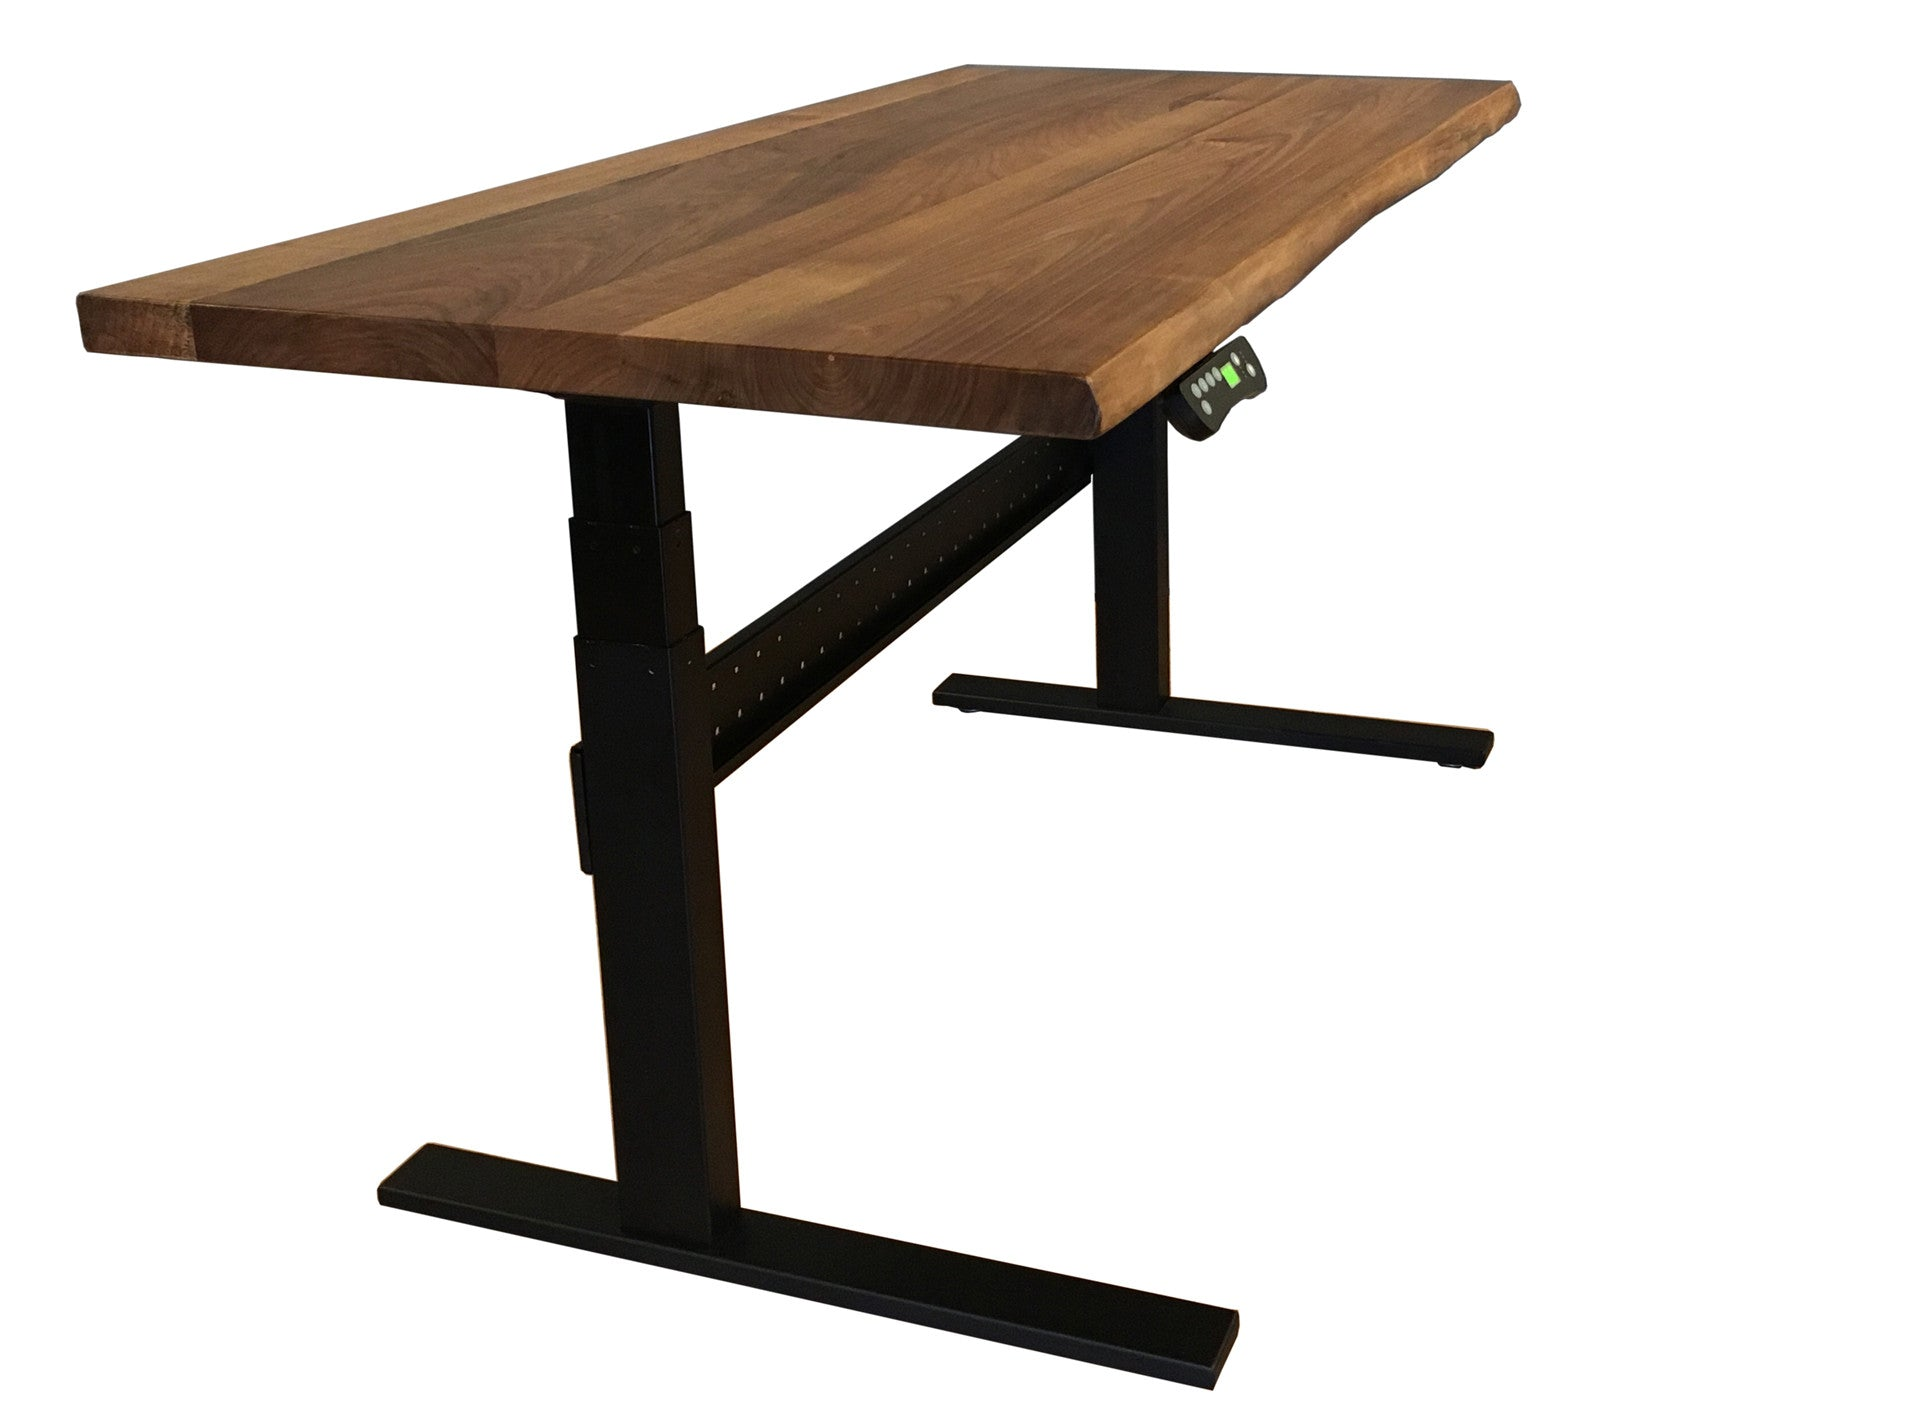 Adjustable height desk stand sit desk motorized with memory settings